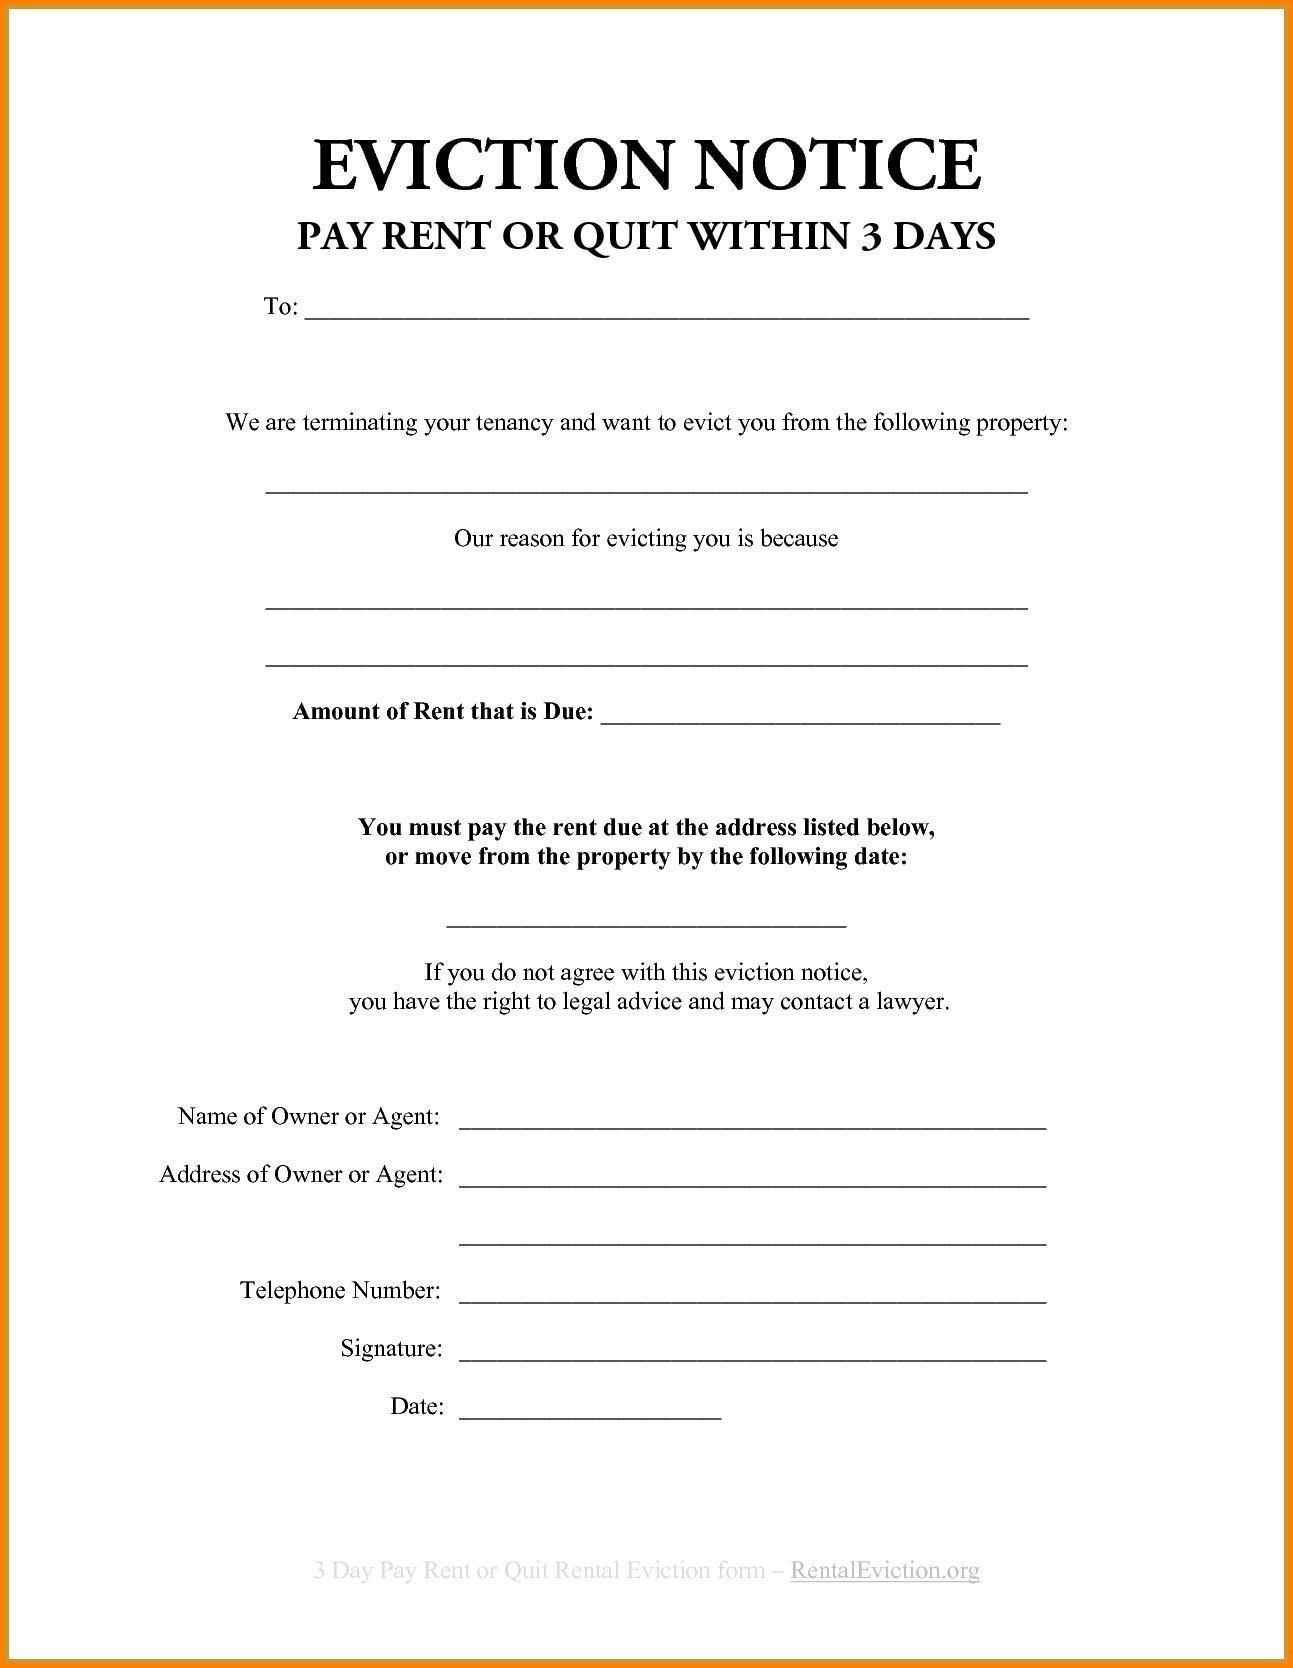 Eviction Notice Forms Unique Free Eviction Notice Template